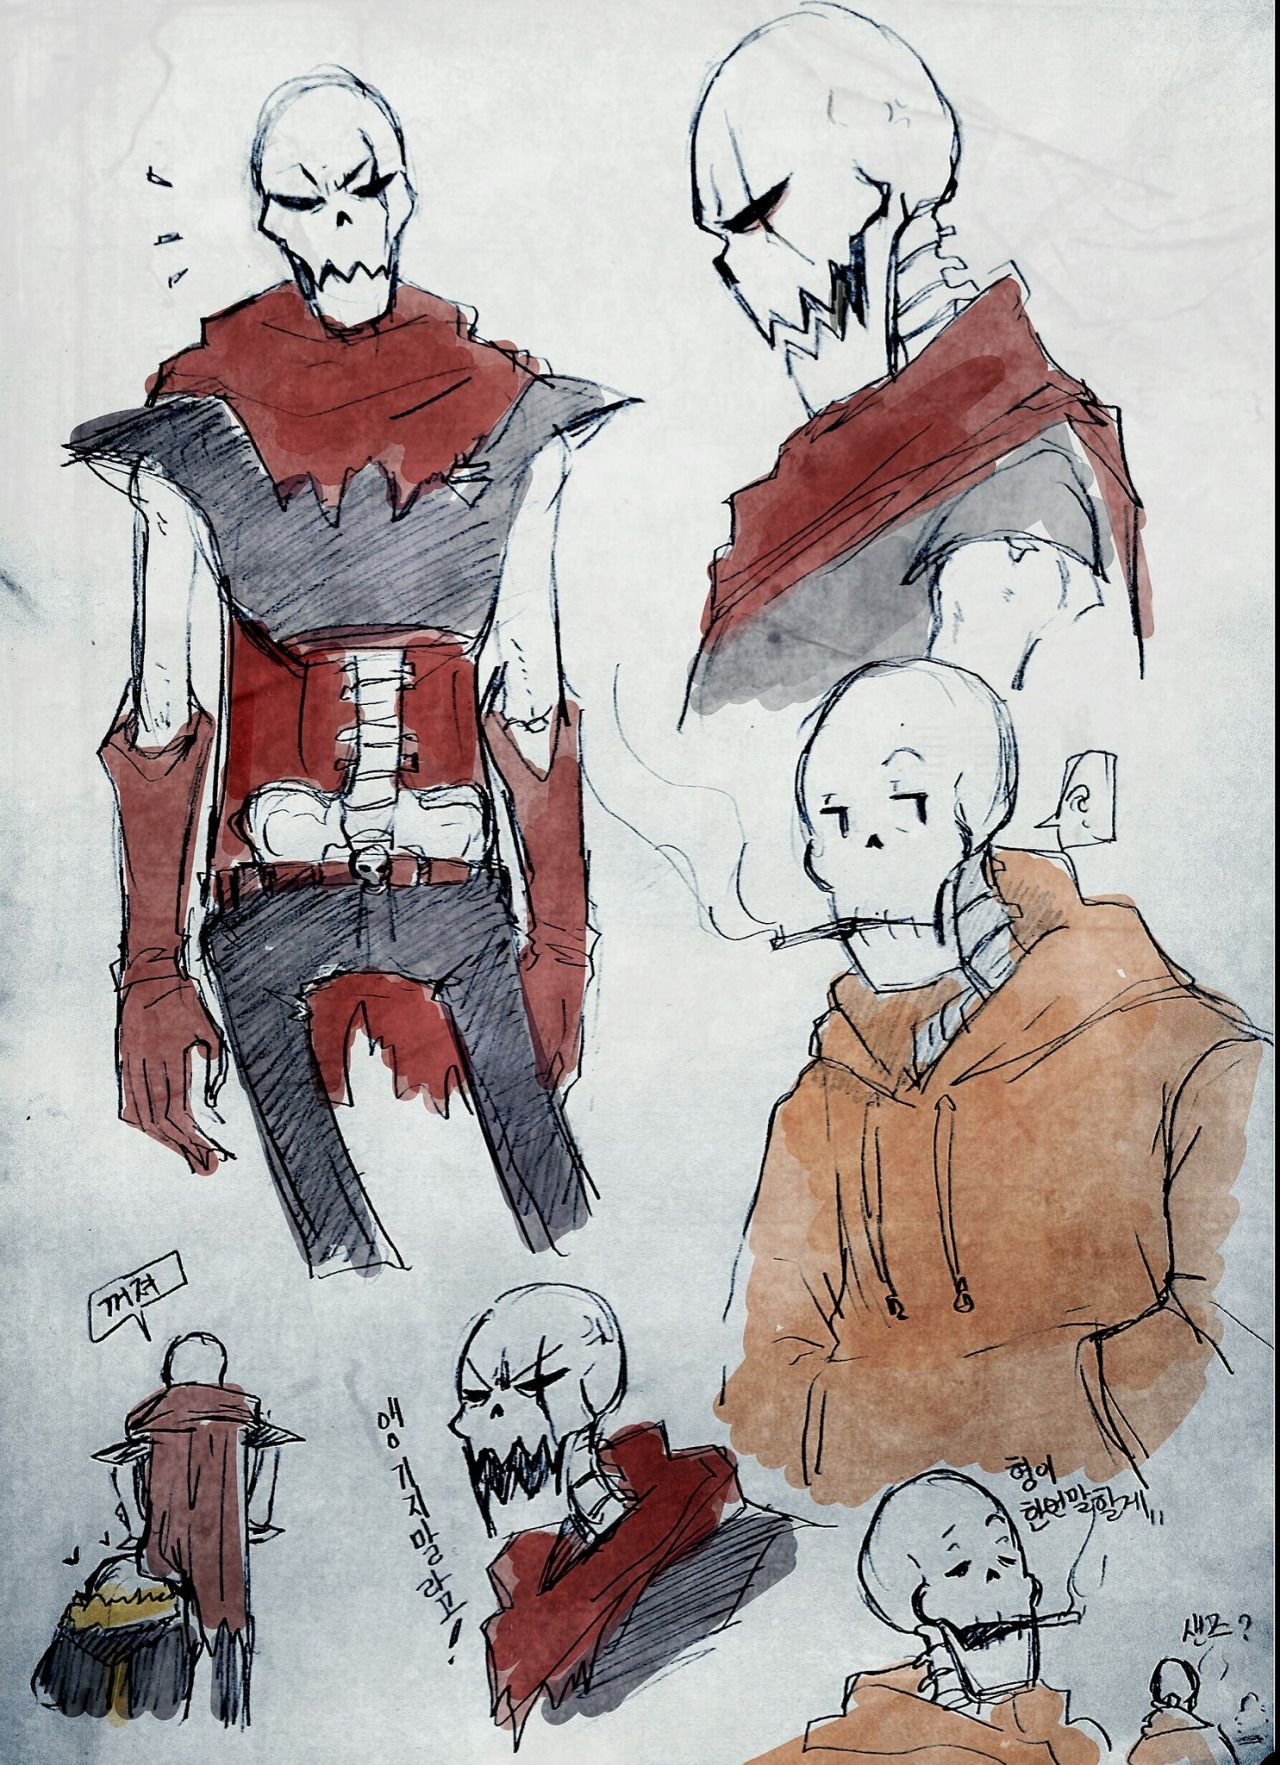 UnderFell! Papyrus / UnderSwap! Papyrus and UnderFell! Sans | Artist